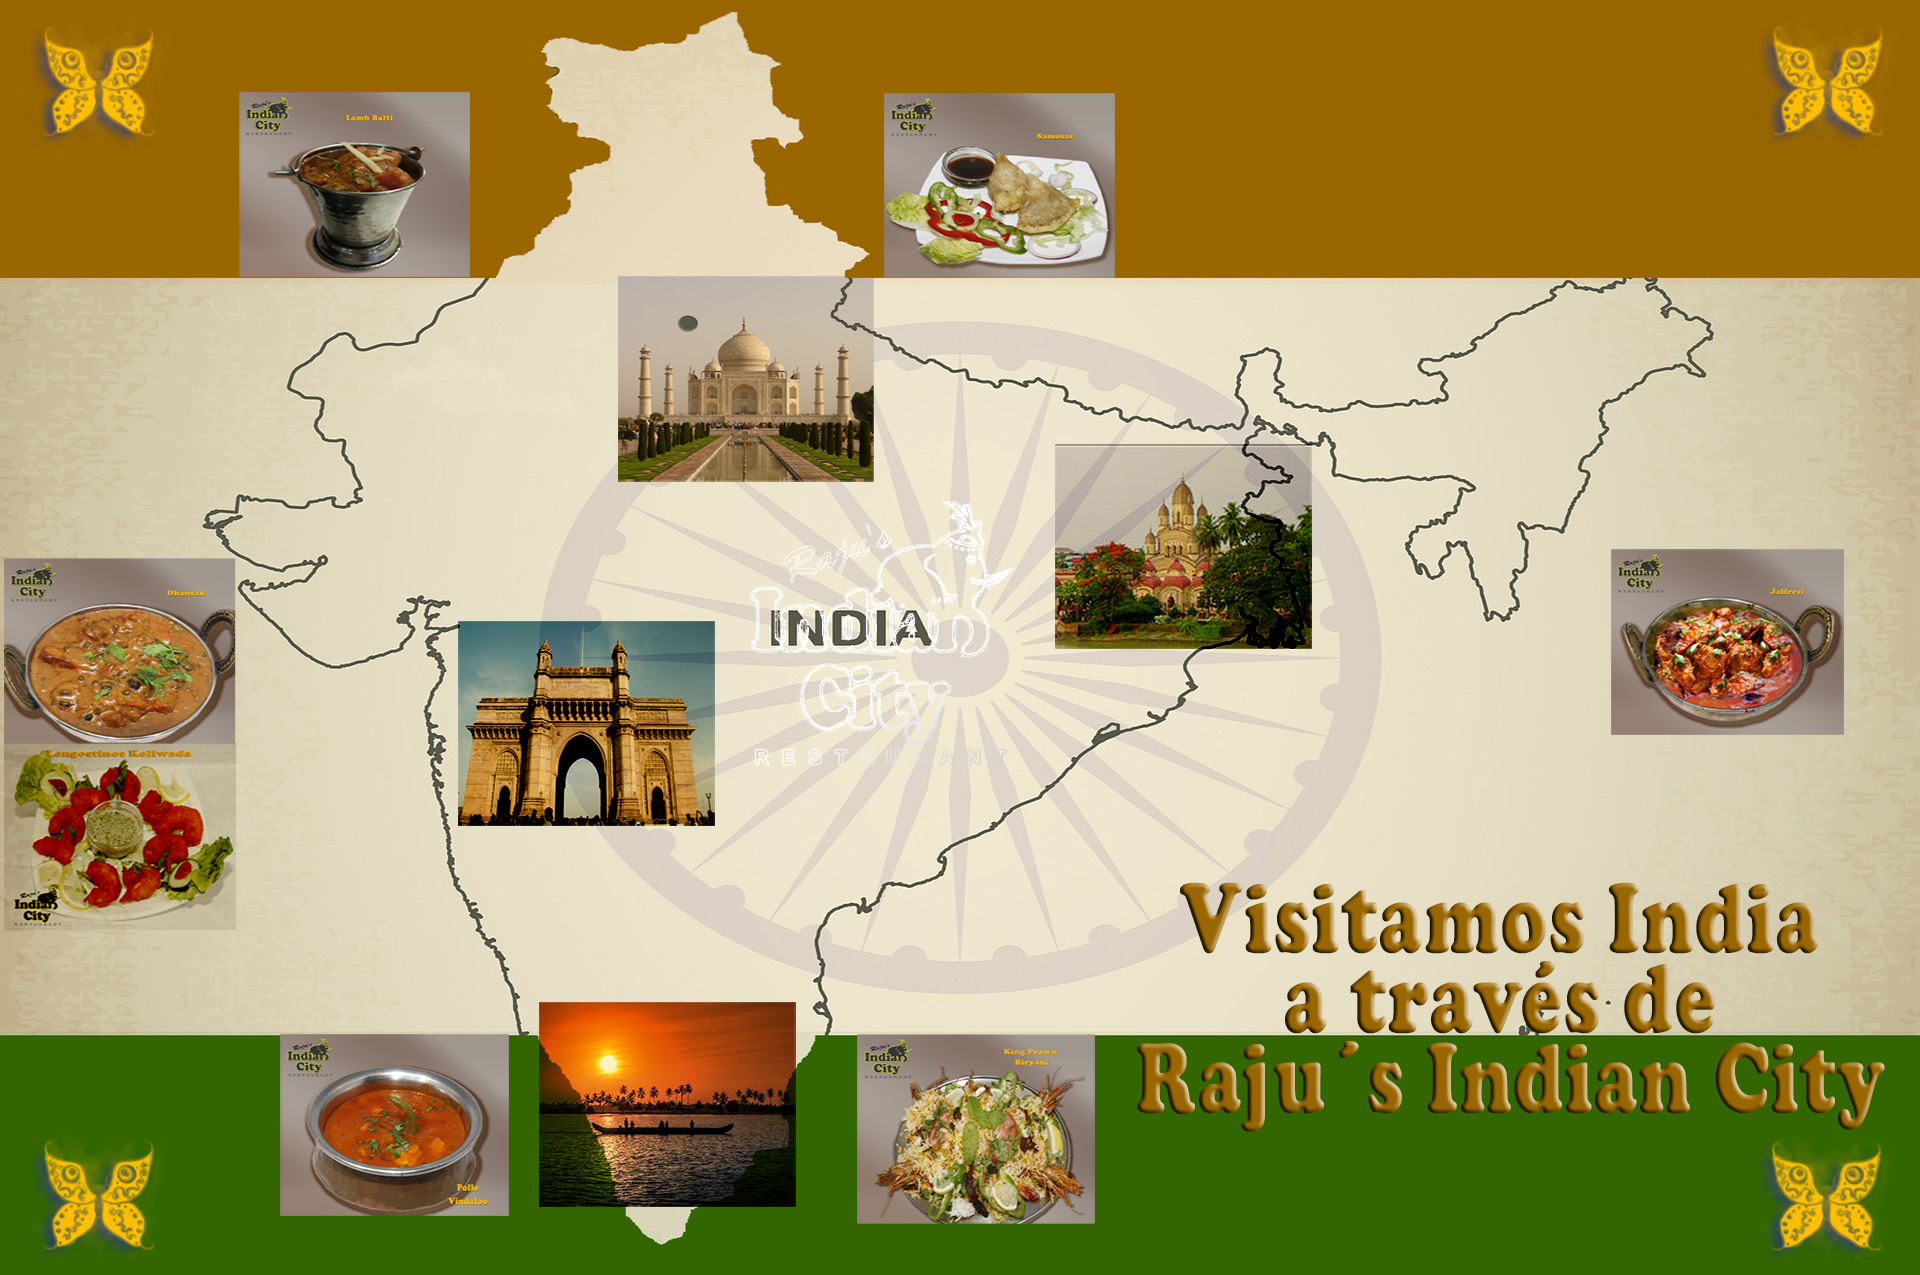 Visitamos India a través de Rajus Indian City